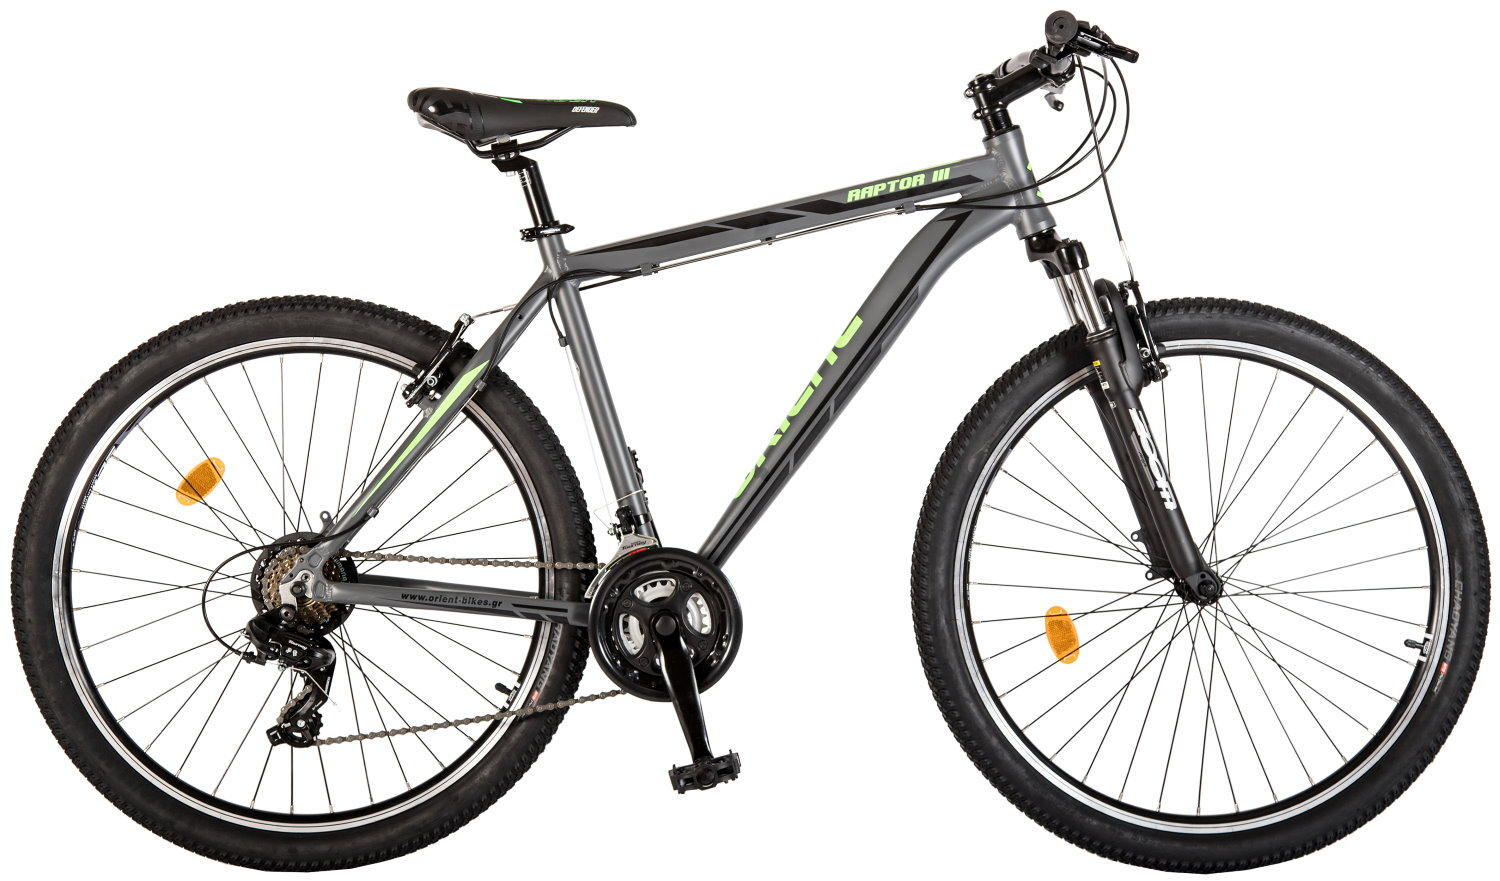 RAPTOR lll 27,5″ 21sp. bike image